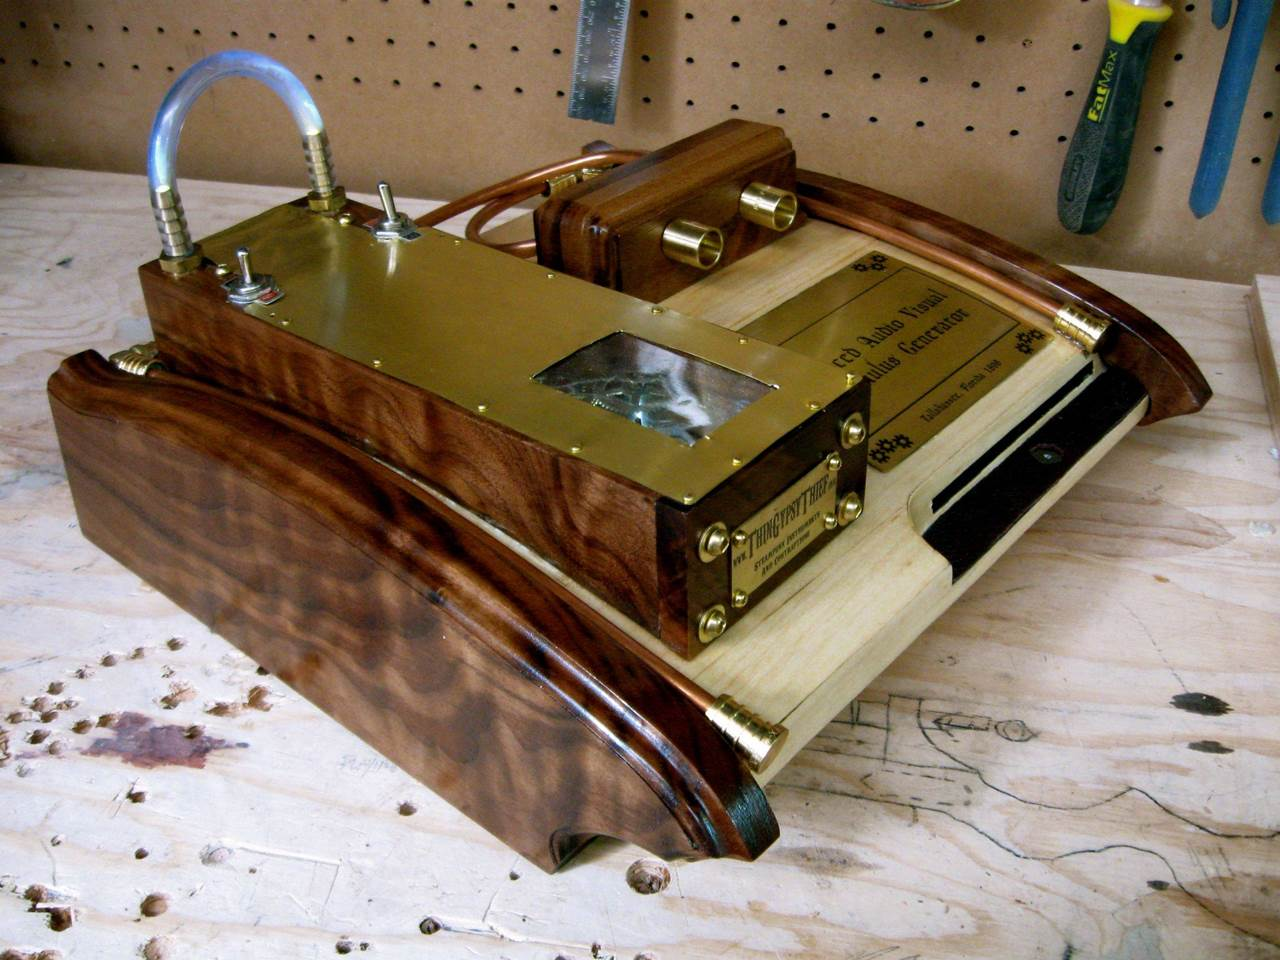 PS3, Xbox 360 and Gameboy in an awesome Steampunk case mod